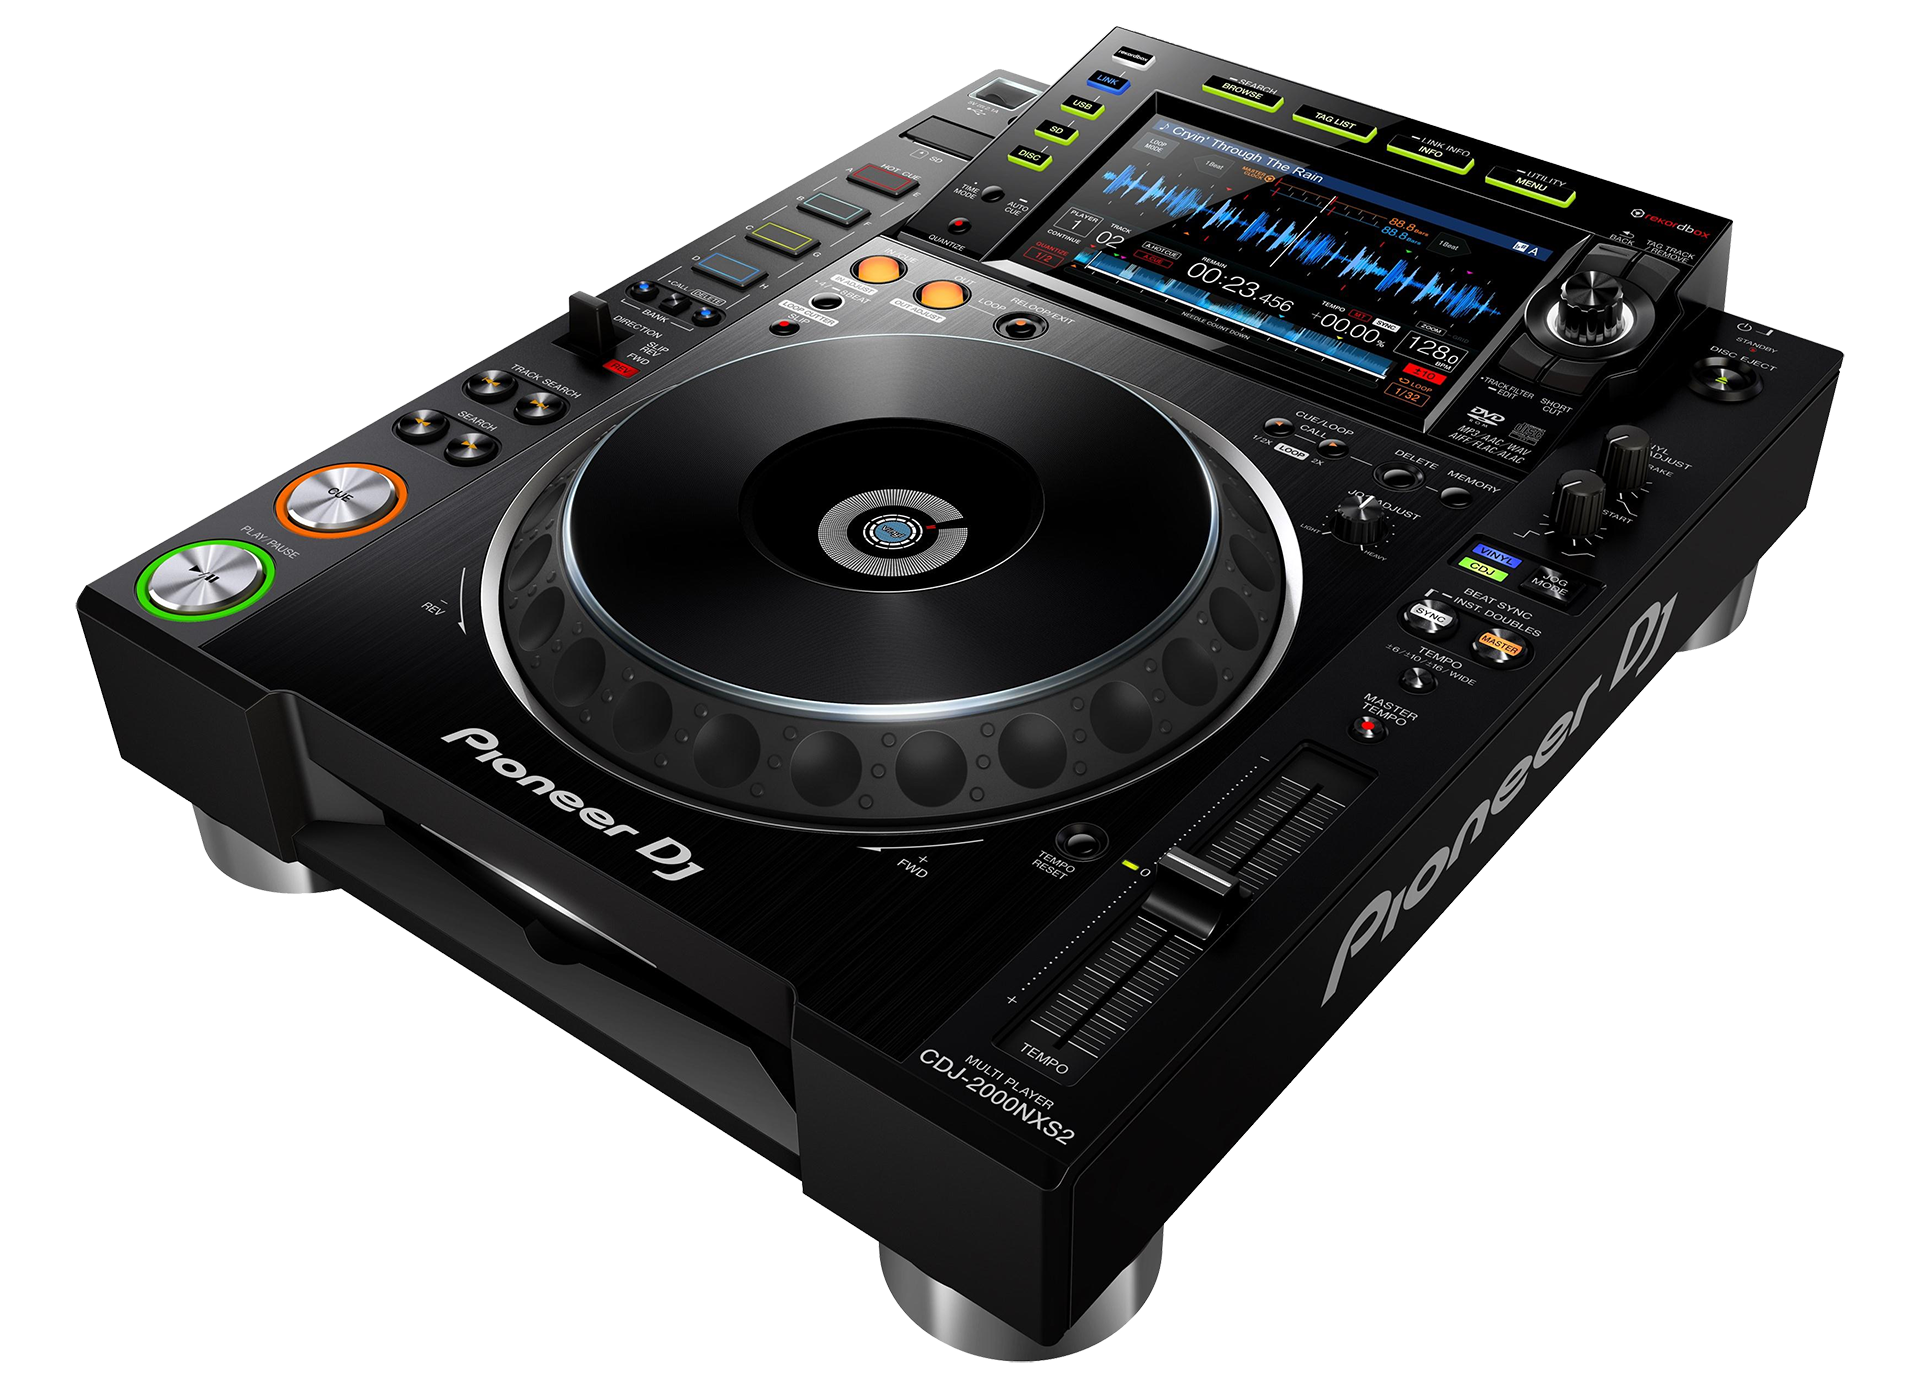 cdj 2000nxs2 multi player by pioneer for rent apex sound light corporation. Black Bedroom Furniture Sets. Home Design Ideas